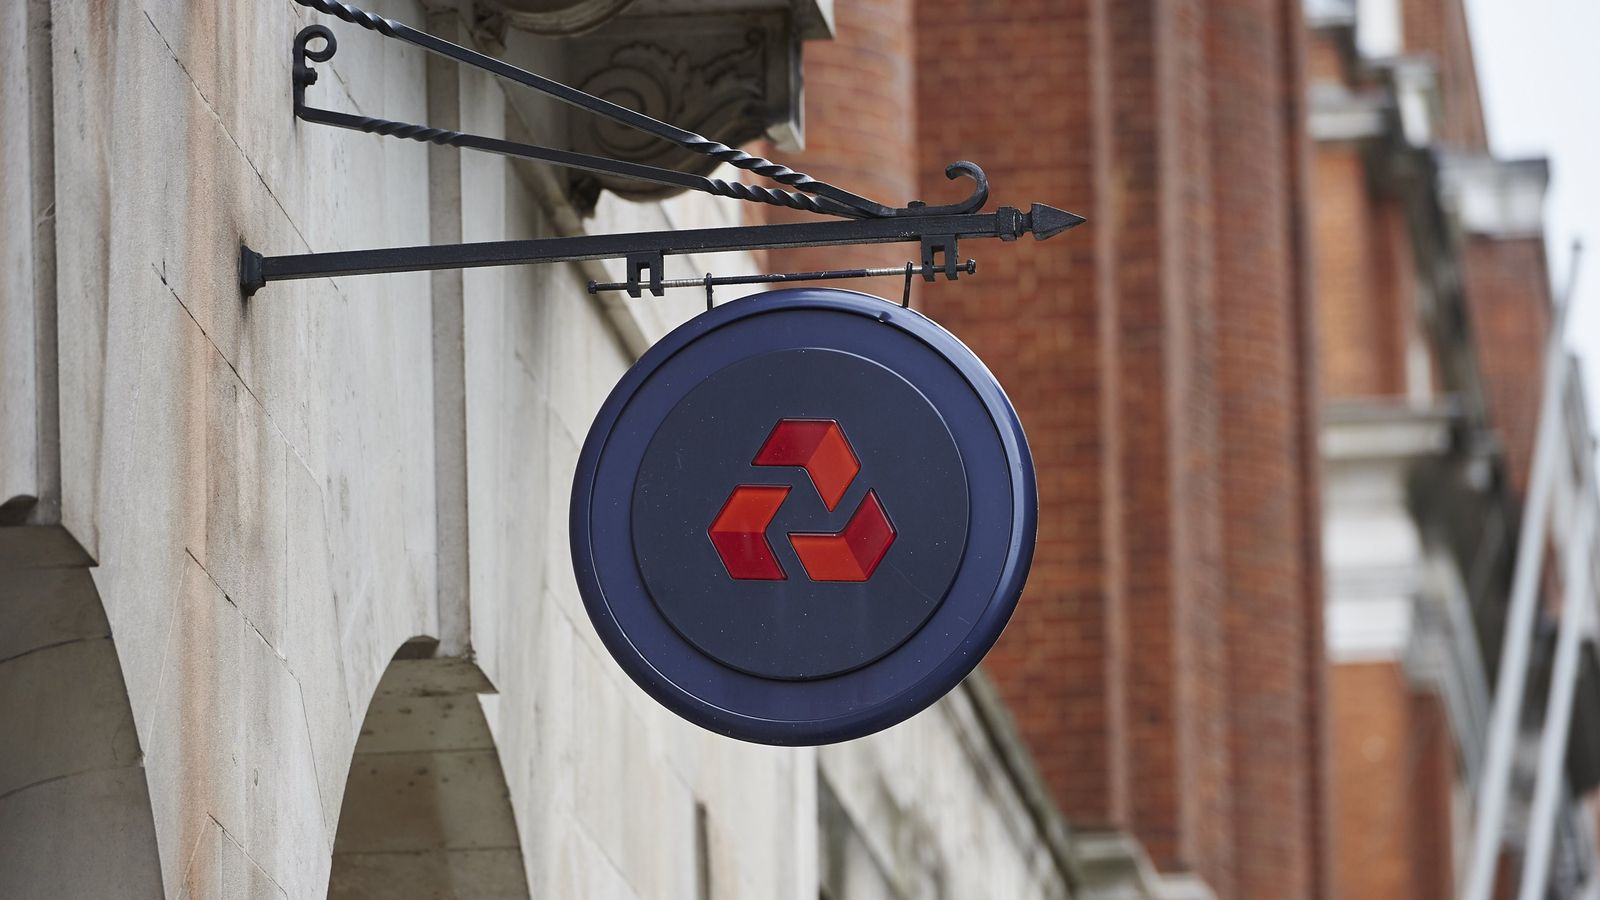 NatWest online and mobile banking services down